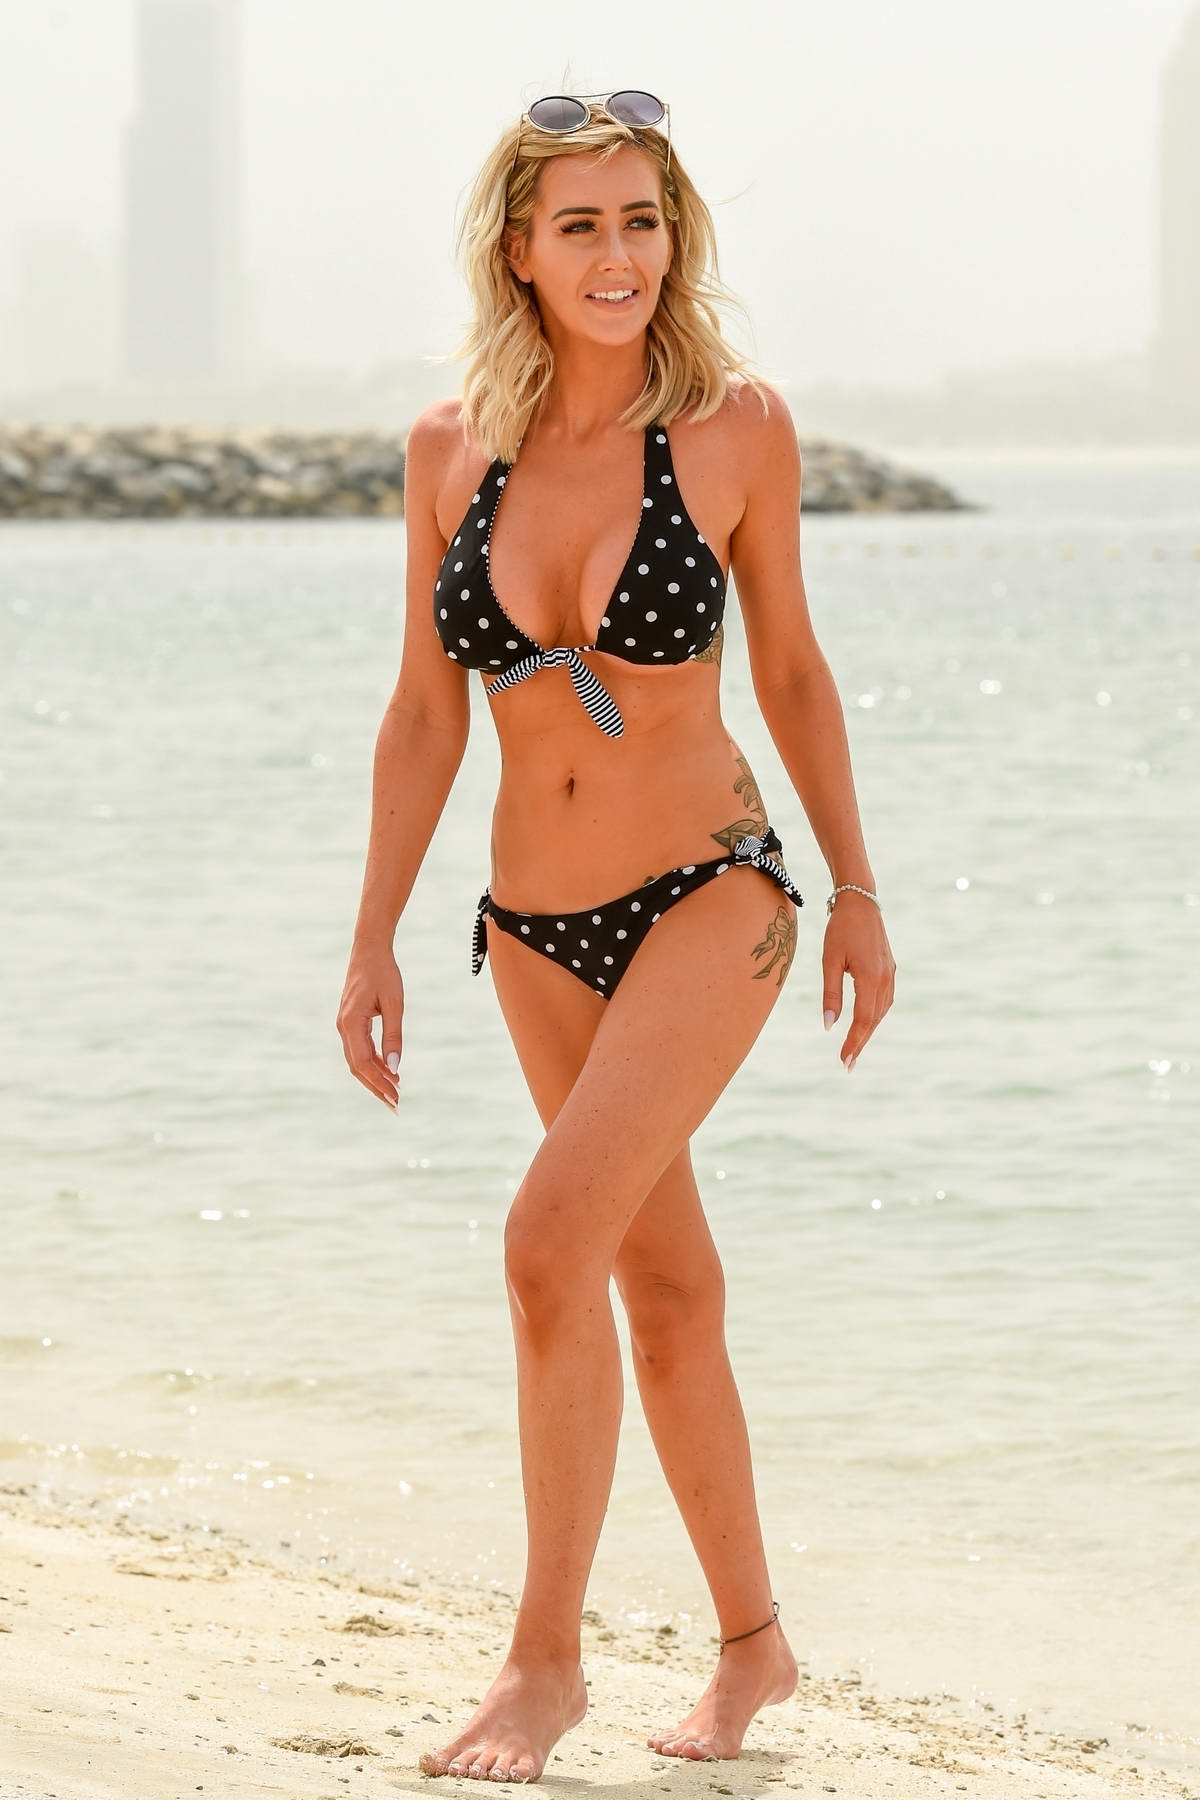 Laura Anderson spotted in a black and white polka dot bikini as she cools down in the sea in Dubai